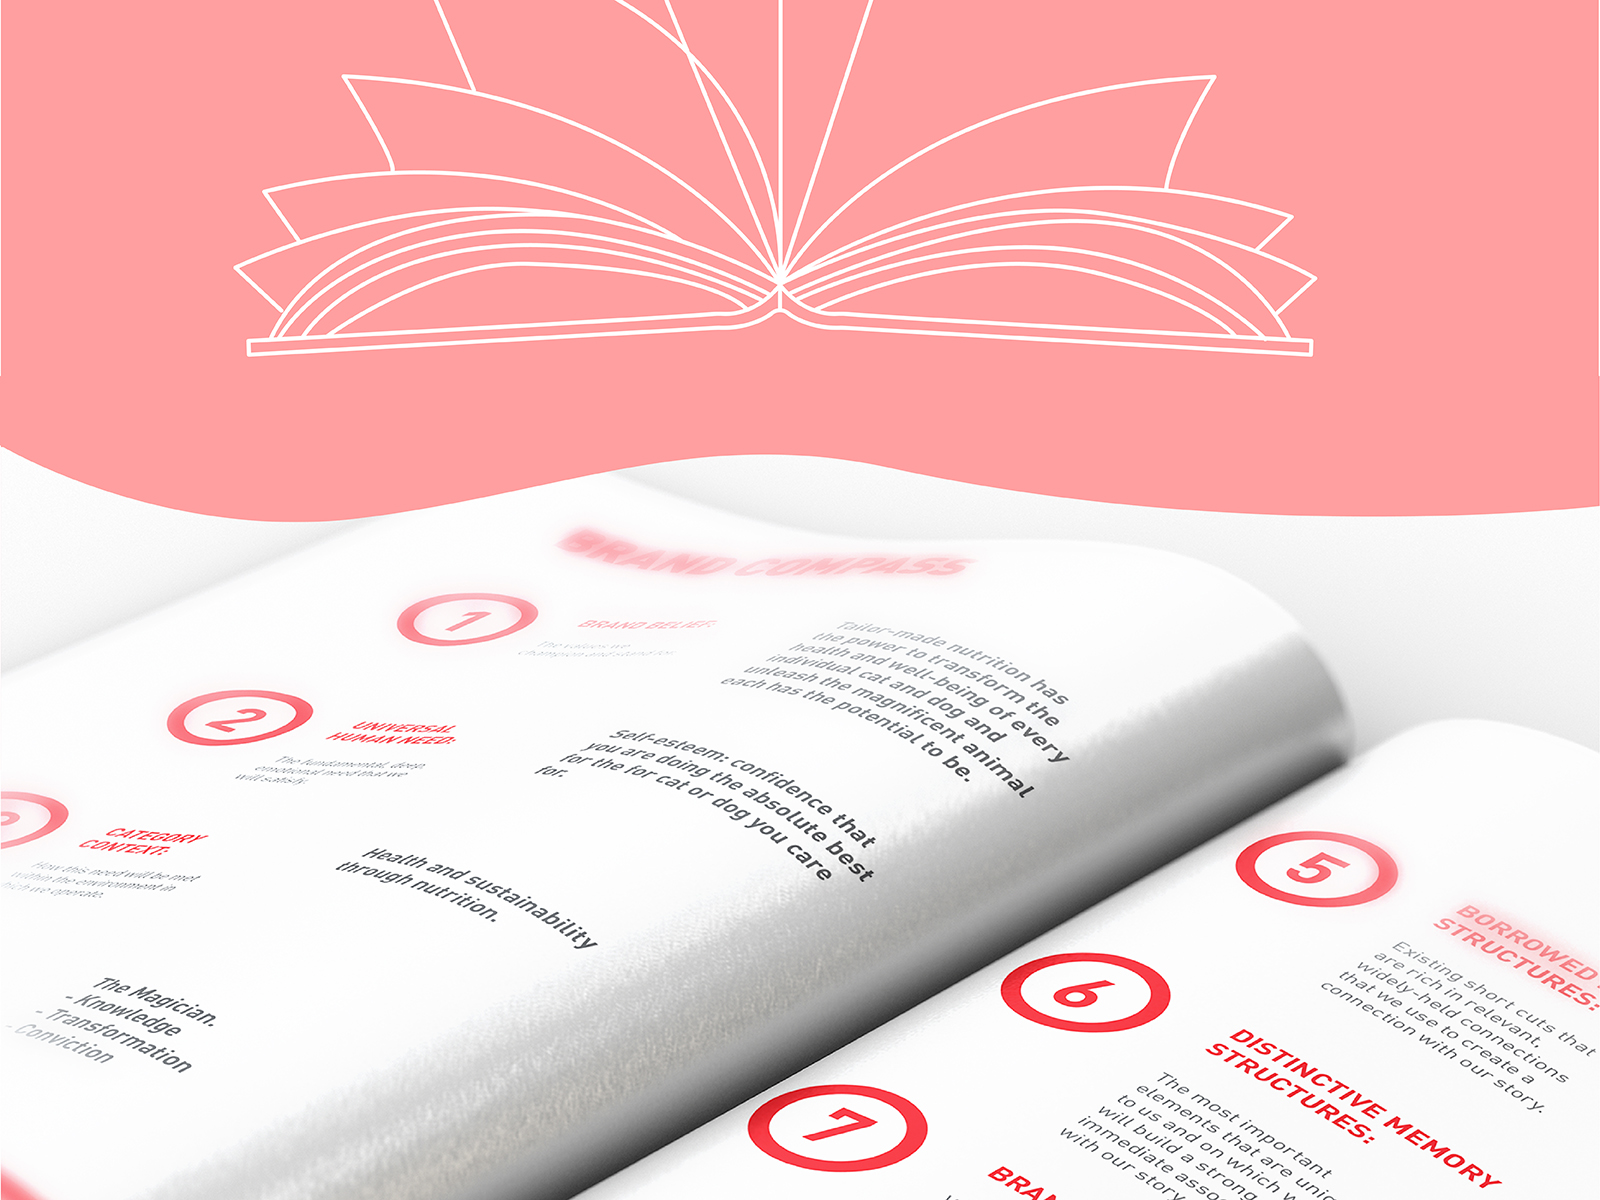 Royal Canin digital CI extension booklet inner content page design